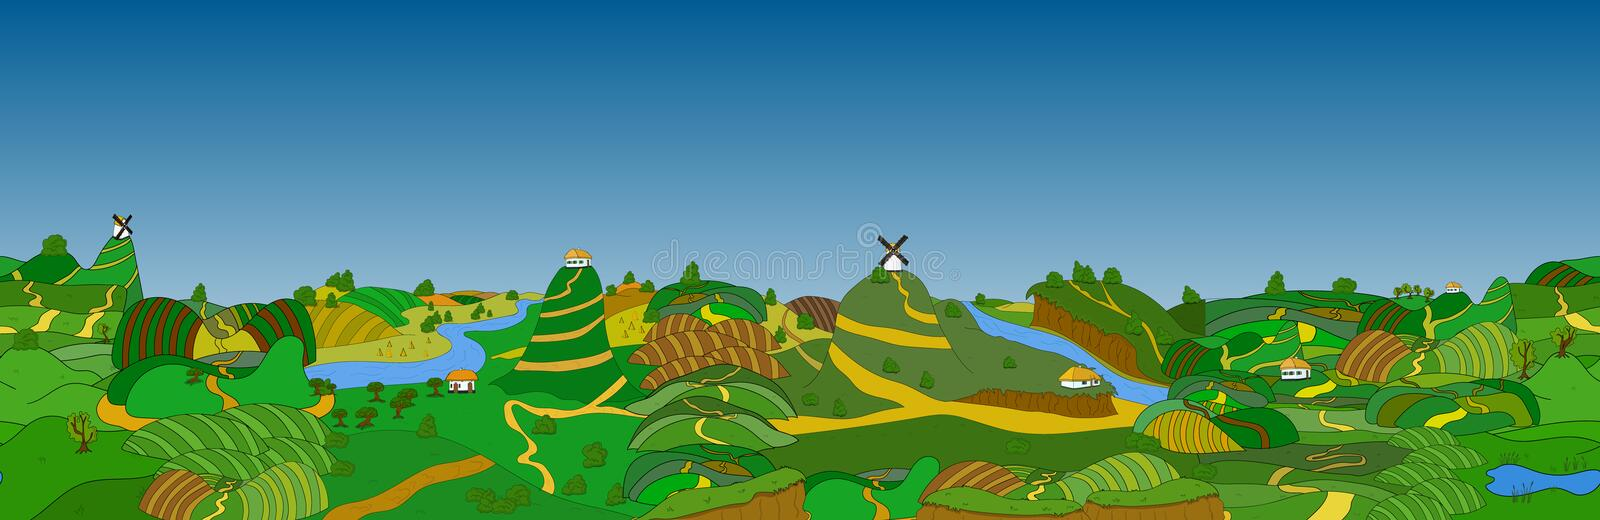 Beautiful country landscape. Vector illustration royalty free illustration